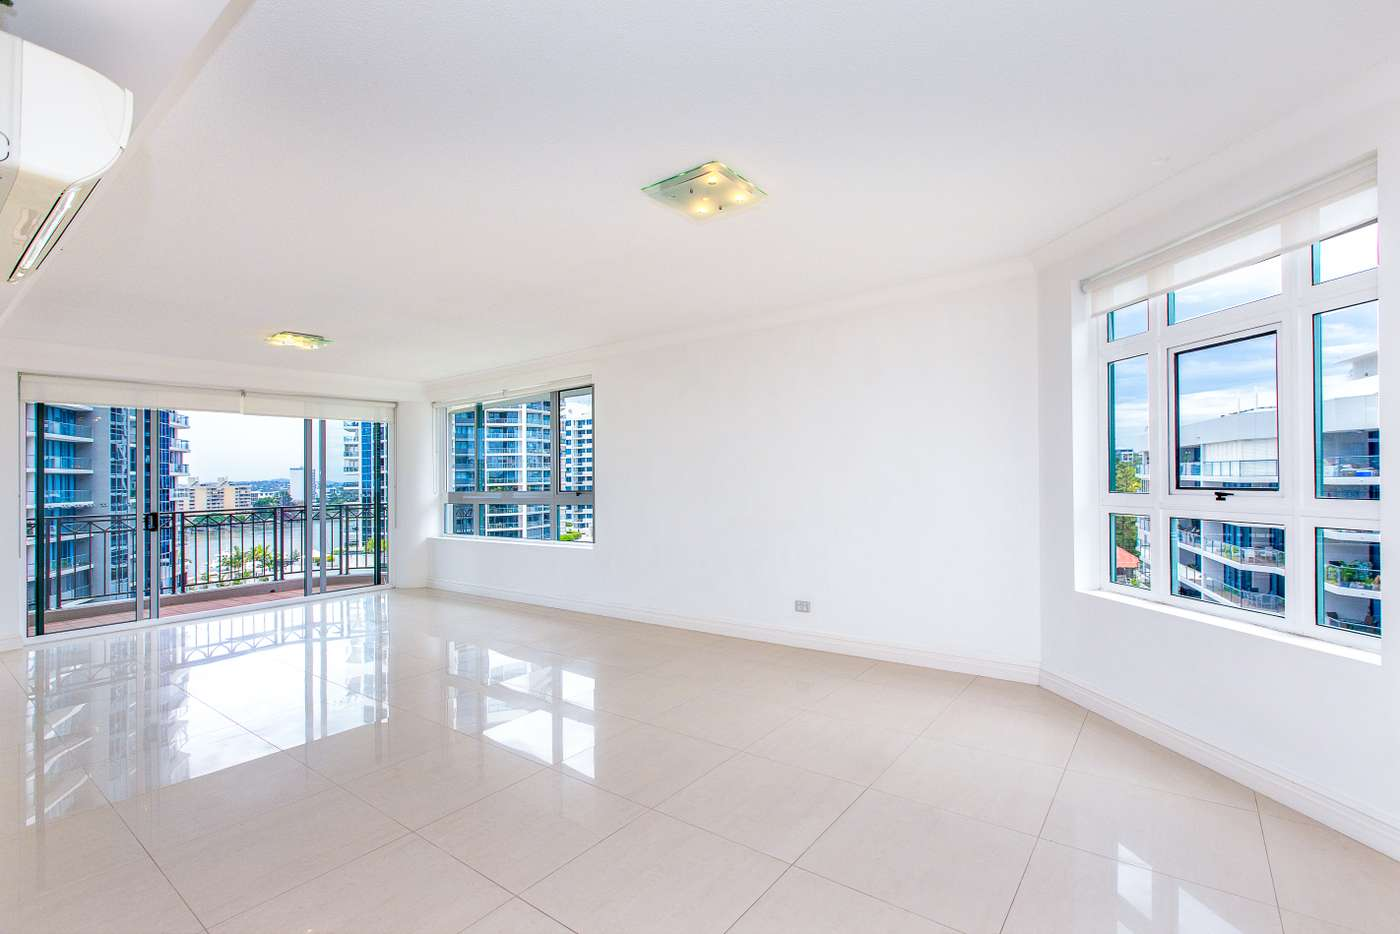 Main view of Homely apartment listing, 1 Goodwin St, Kangaroo Point QLD 4169